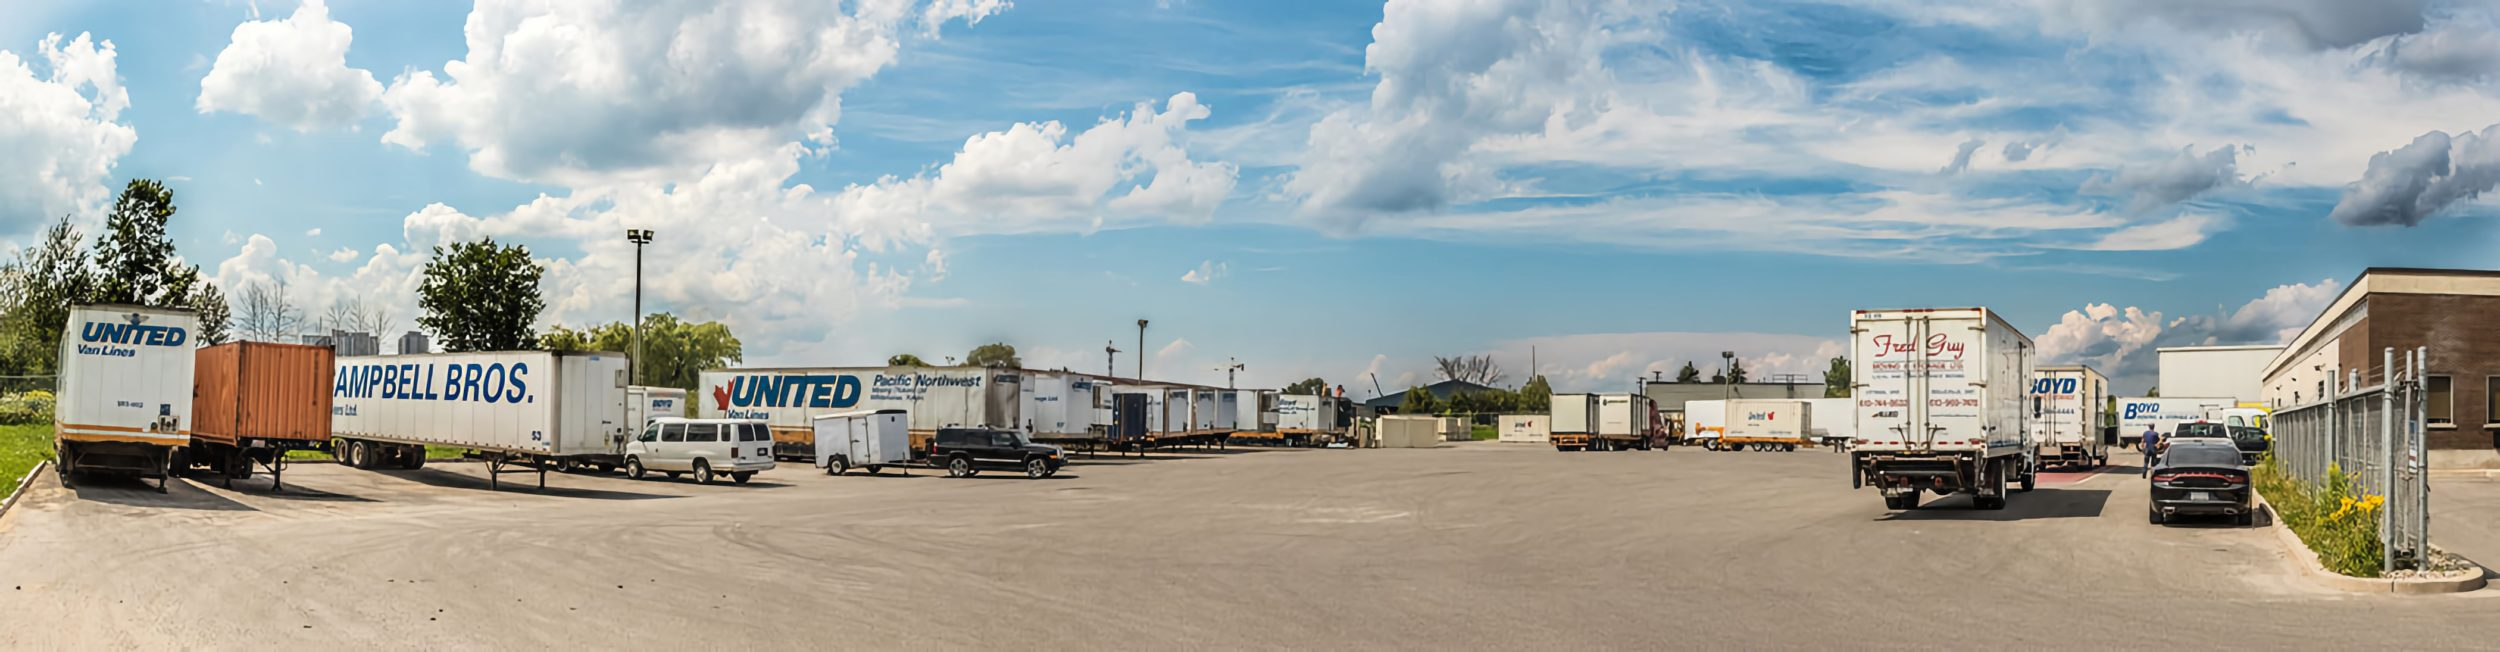 Boyd Moving - panarama shot of truck lot